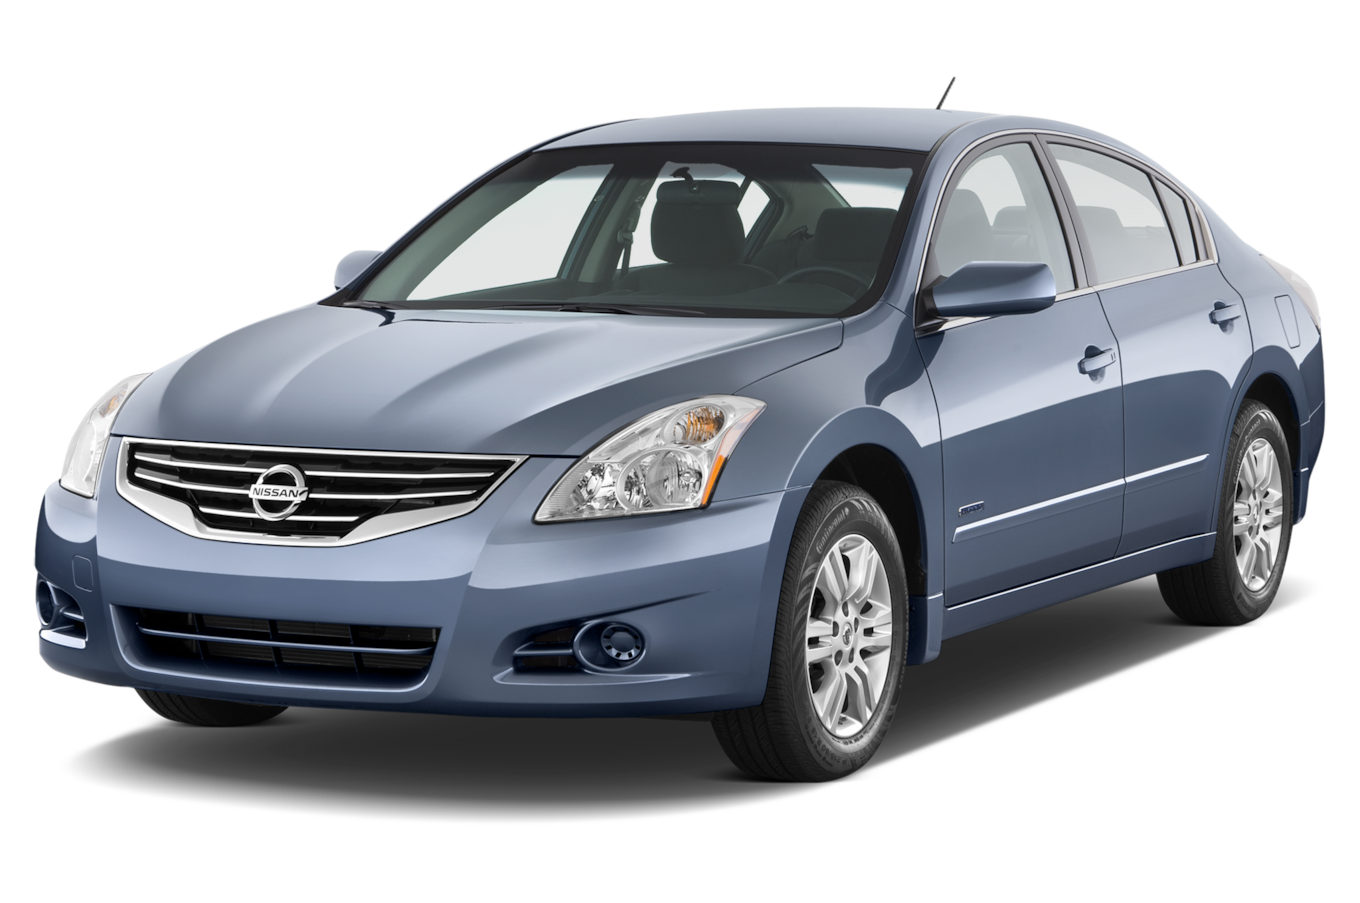 37 New 2010 Nissan Altima Concept with 2010 Nissan Altima